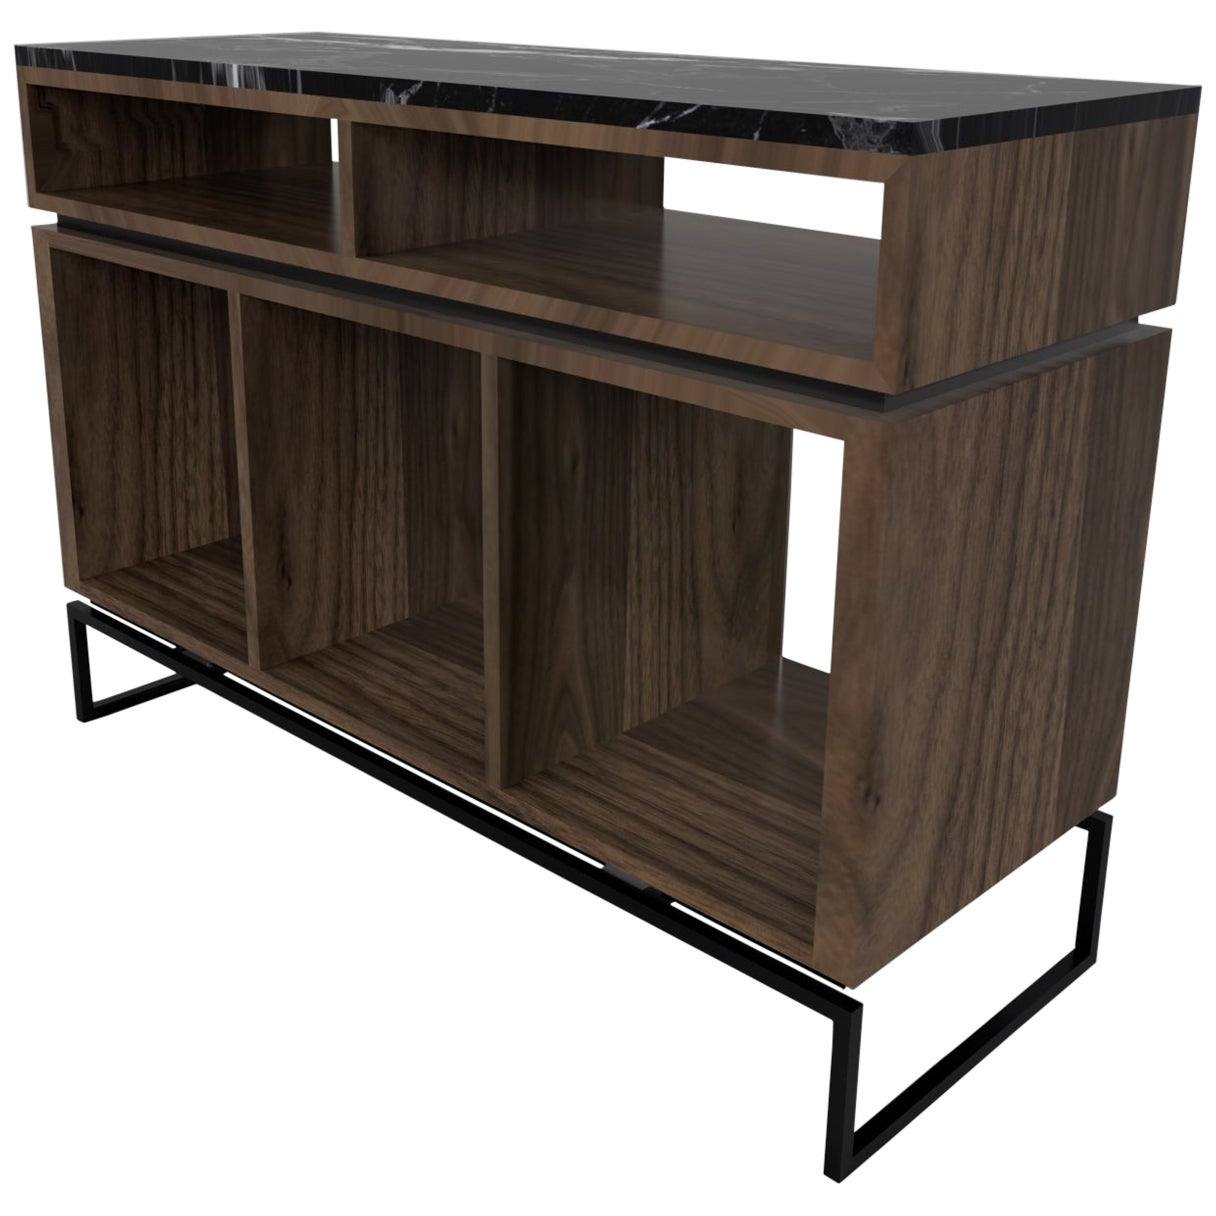 Pelios DJ Console Table Walnut Veneer Structure, Metal Legs and Marble Surface